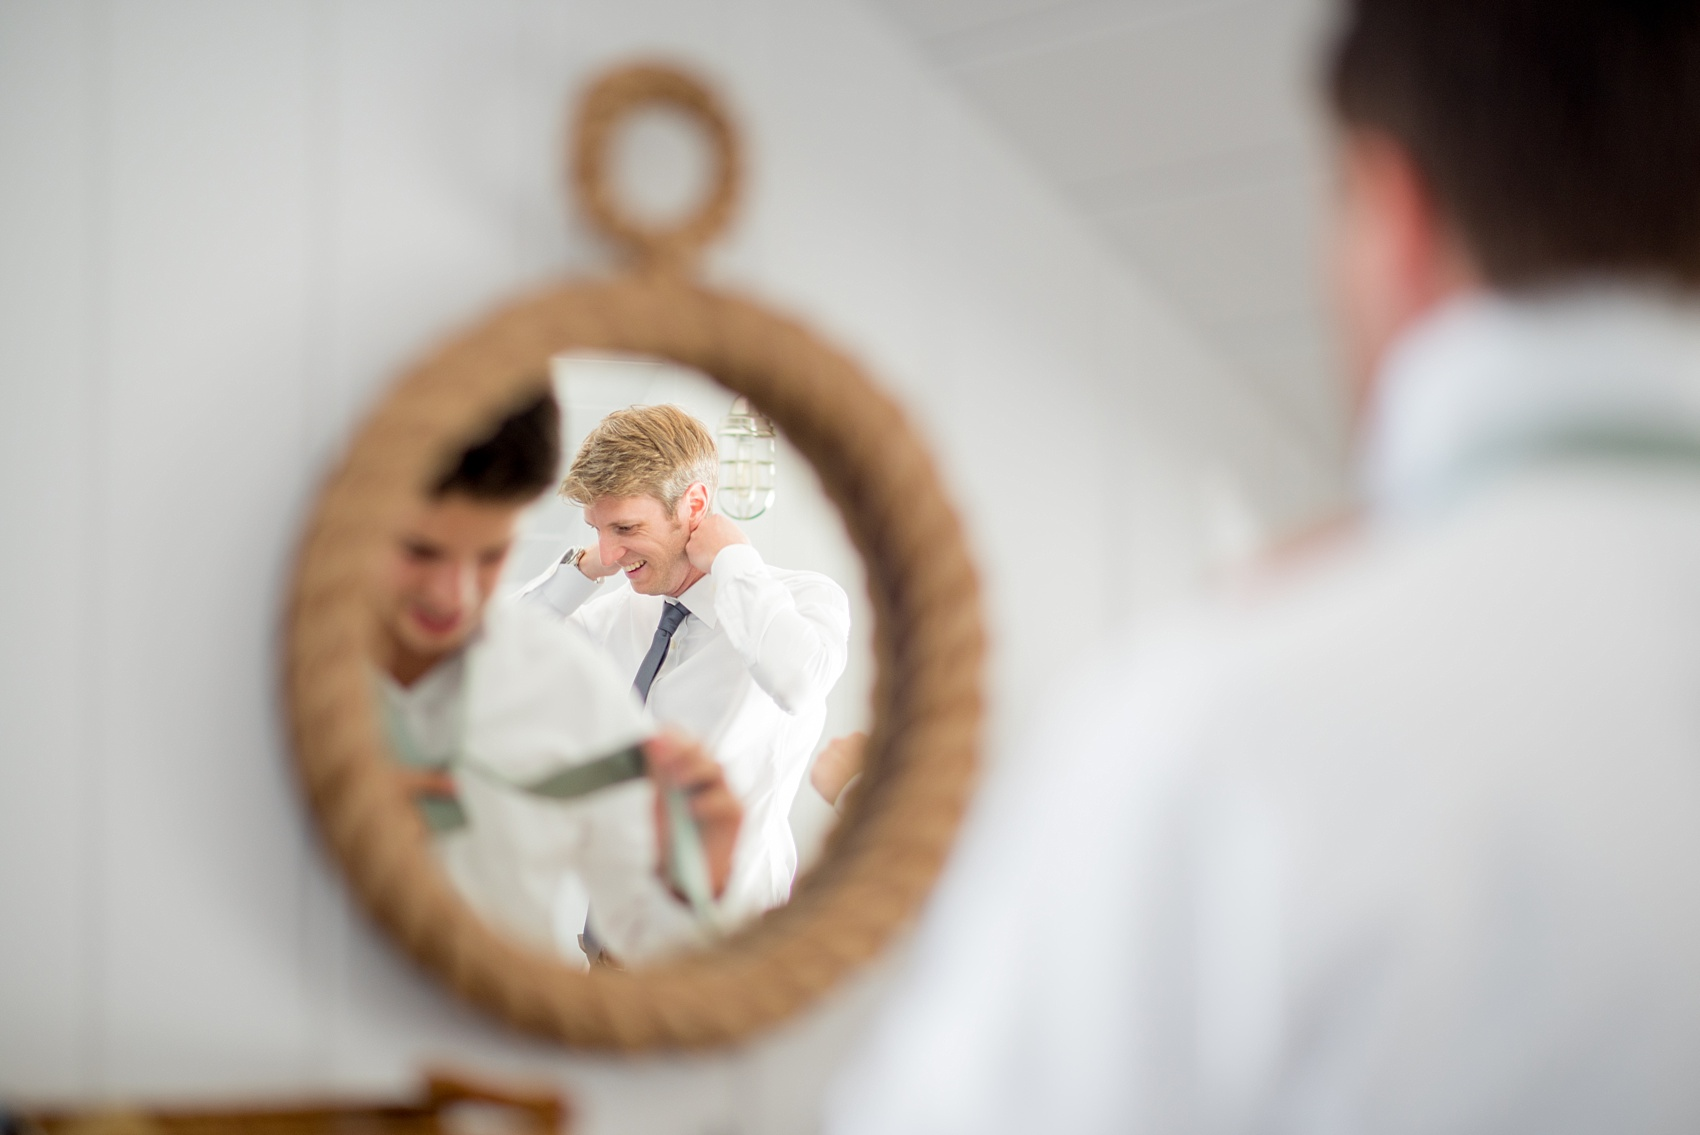 Mikkel Paige Photography photos from a Bay Head Yacht Club wedding in NJ. The groom prepared at his parents beach house in a nautical themed room with a sea rope mirror.